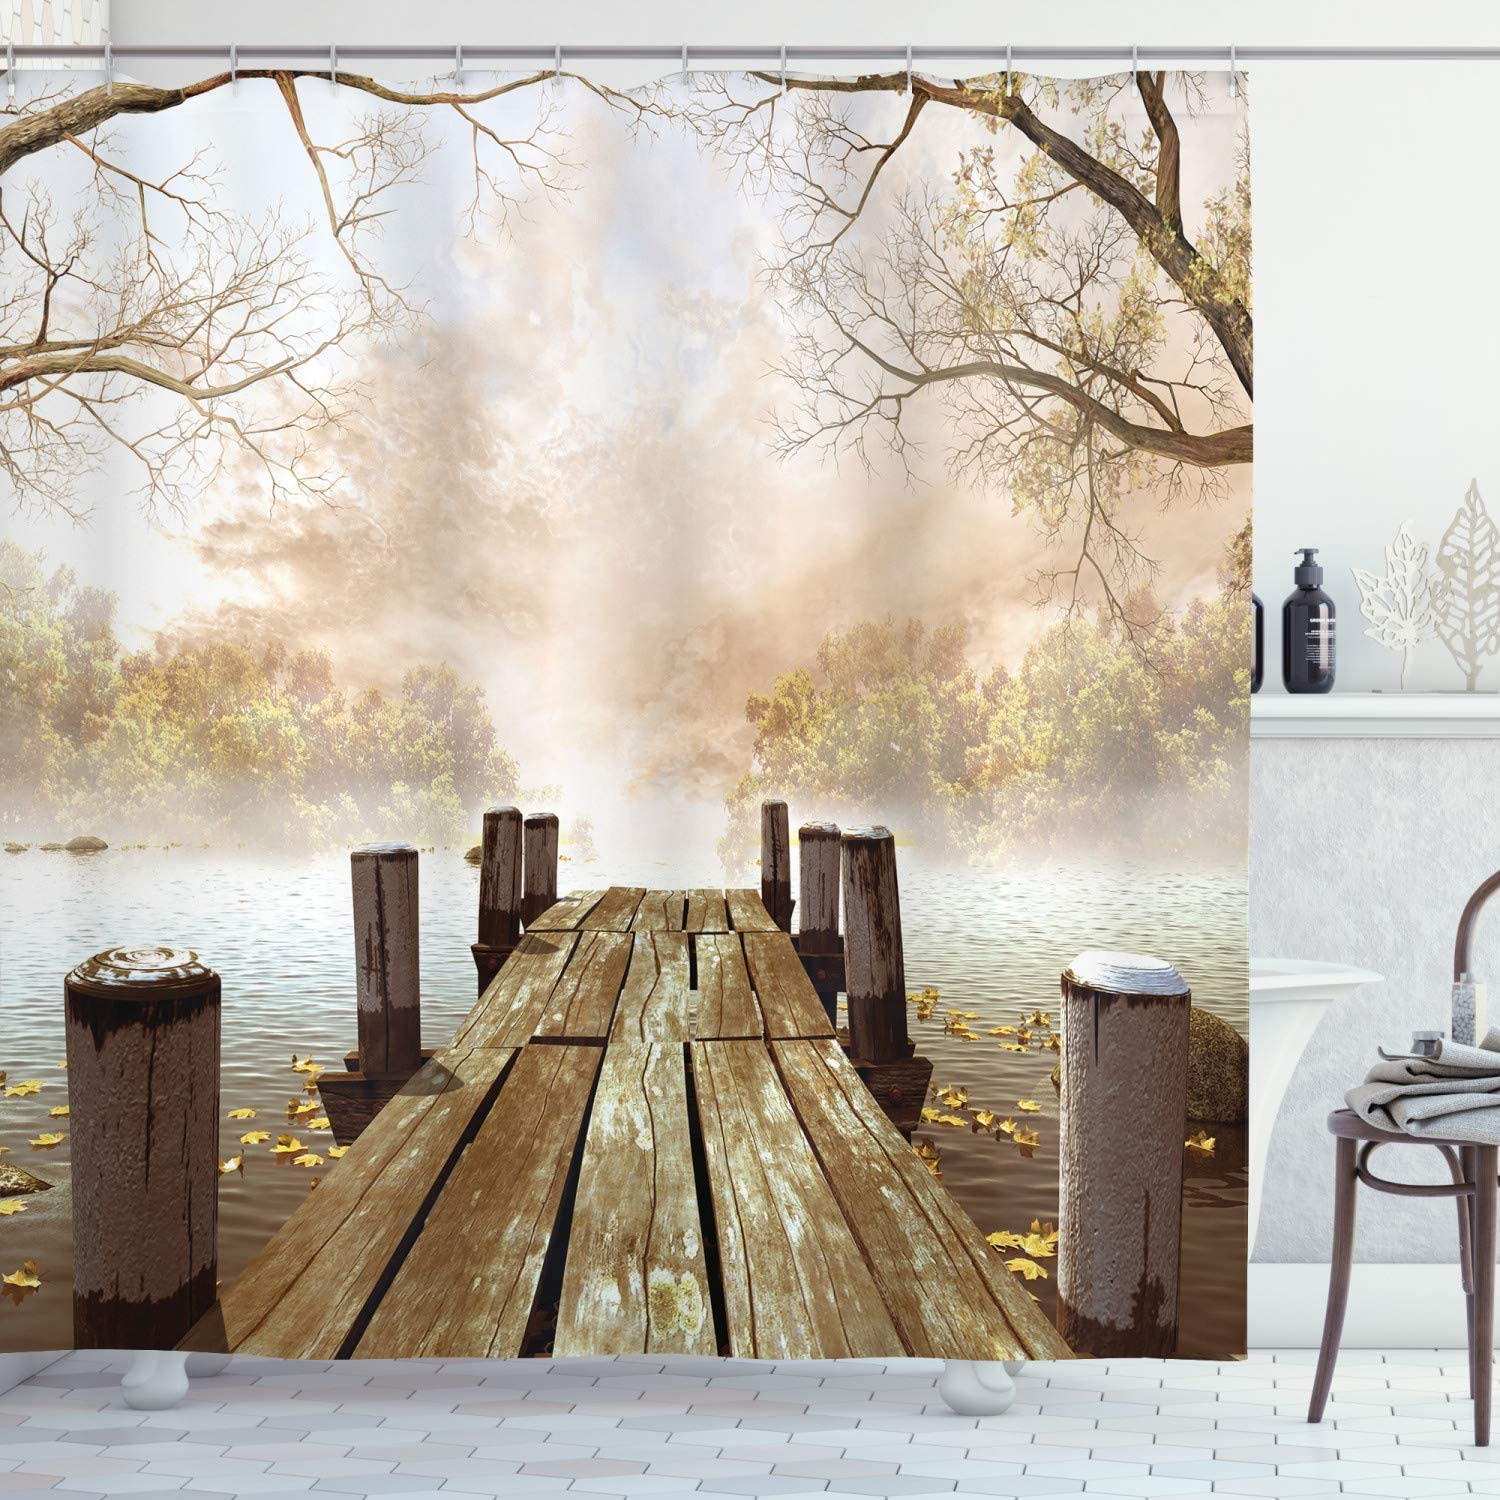 Amazon Com Ambesonne Autumn Shower Curtain Old Wooden Jetty On A Lake With Fallen Leaves And Foggy Forest In Distance Cloth Fabric Bathroom Decor Set With Hooks 70 Long Brown Beige Home